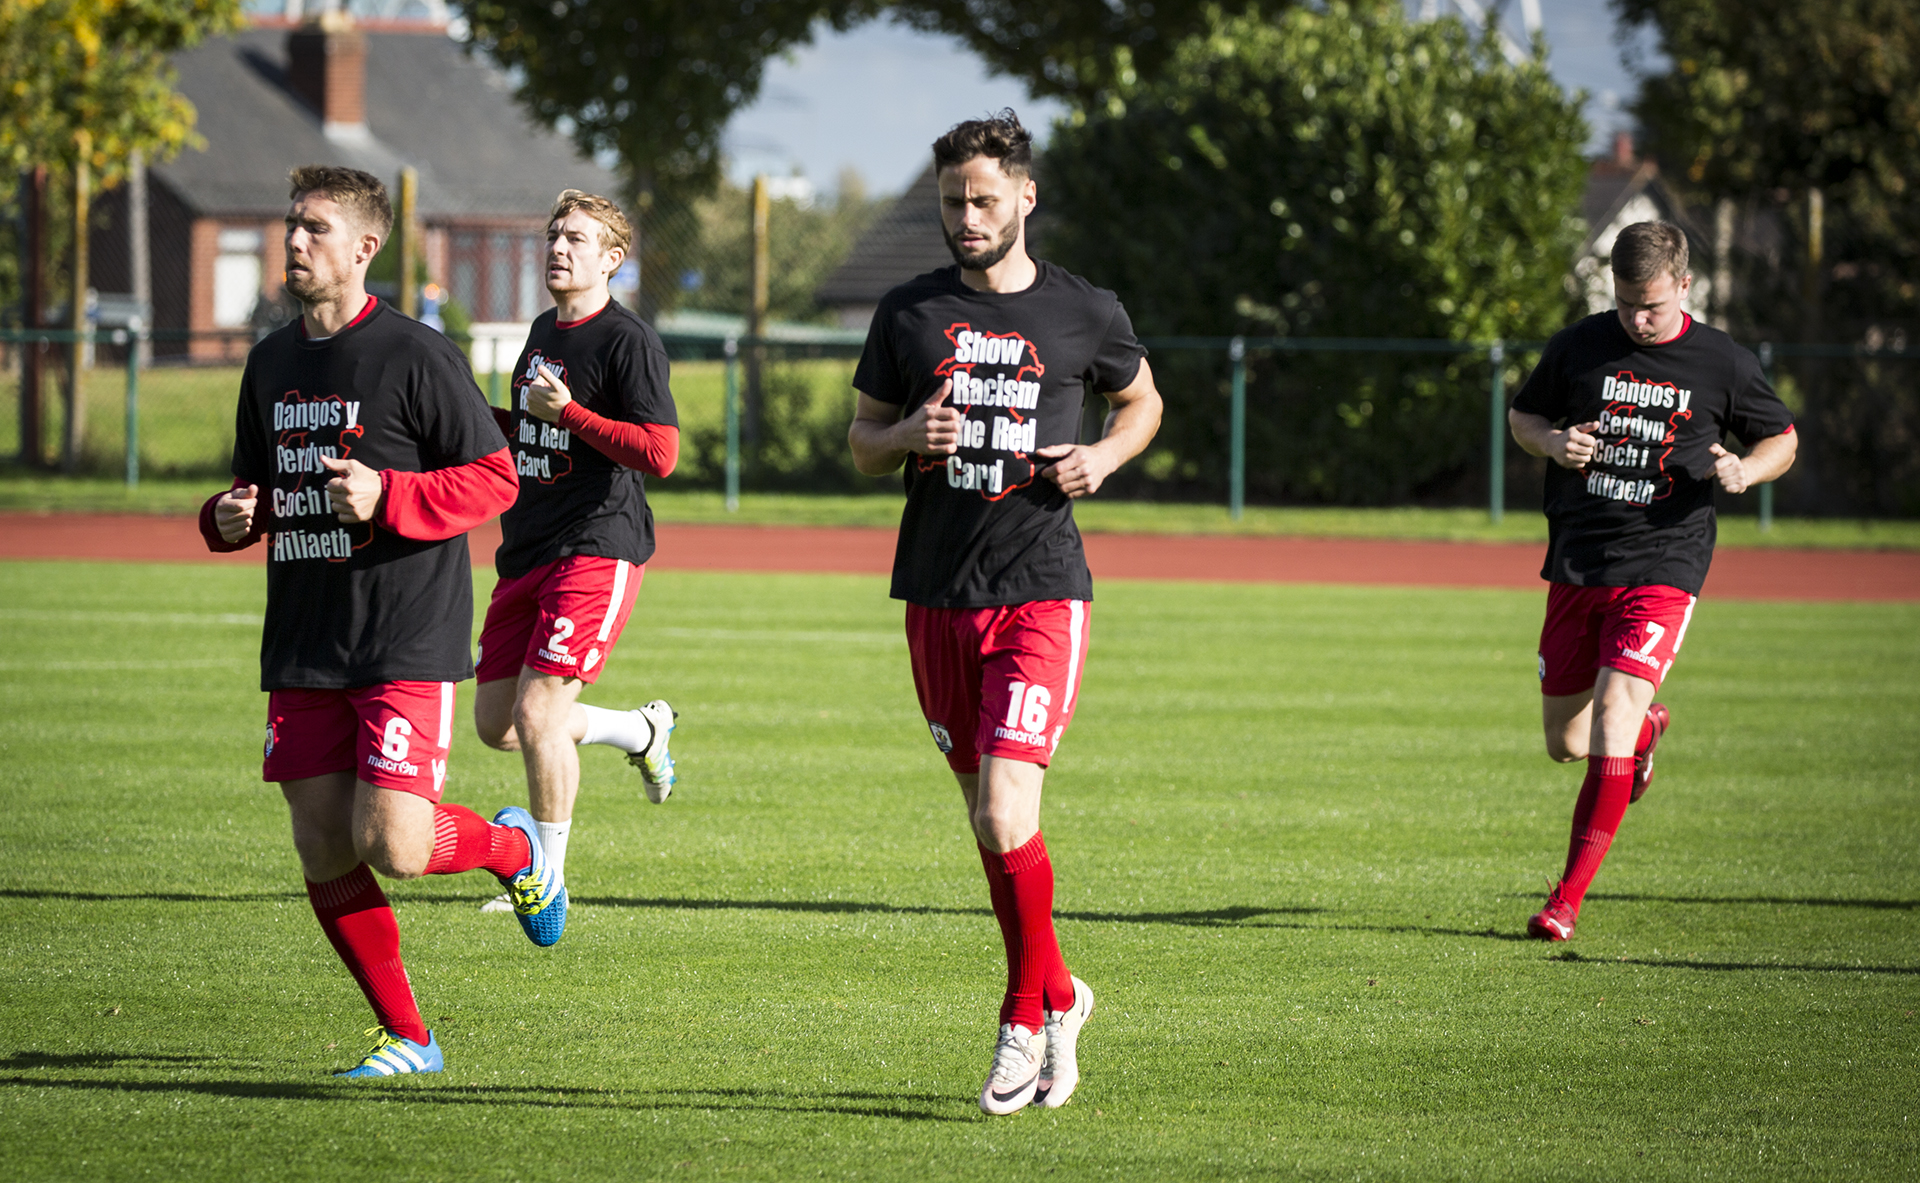 The Nomads warmed up ahead of kick off in their Show Racism the Red Card t-shirts - © NCM Media